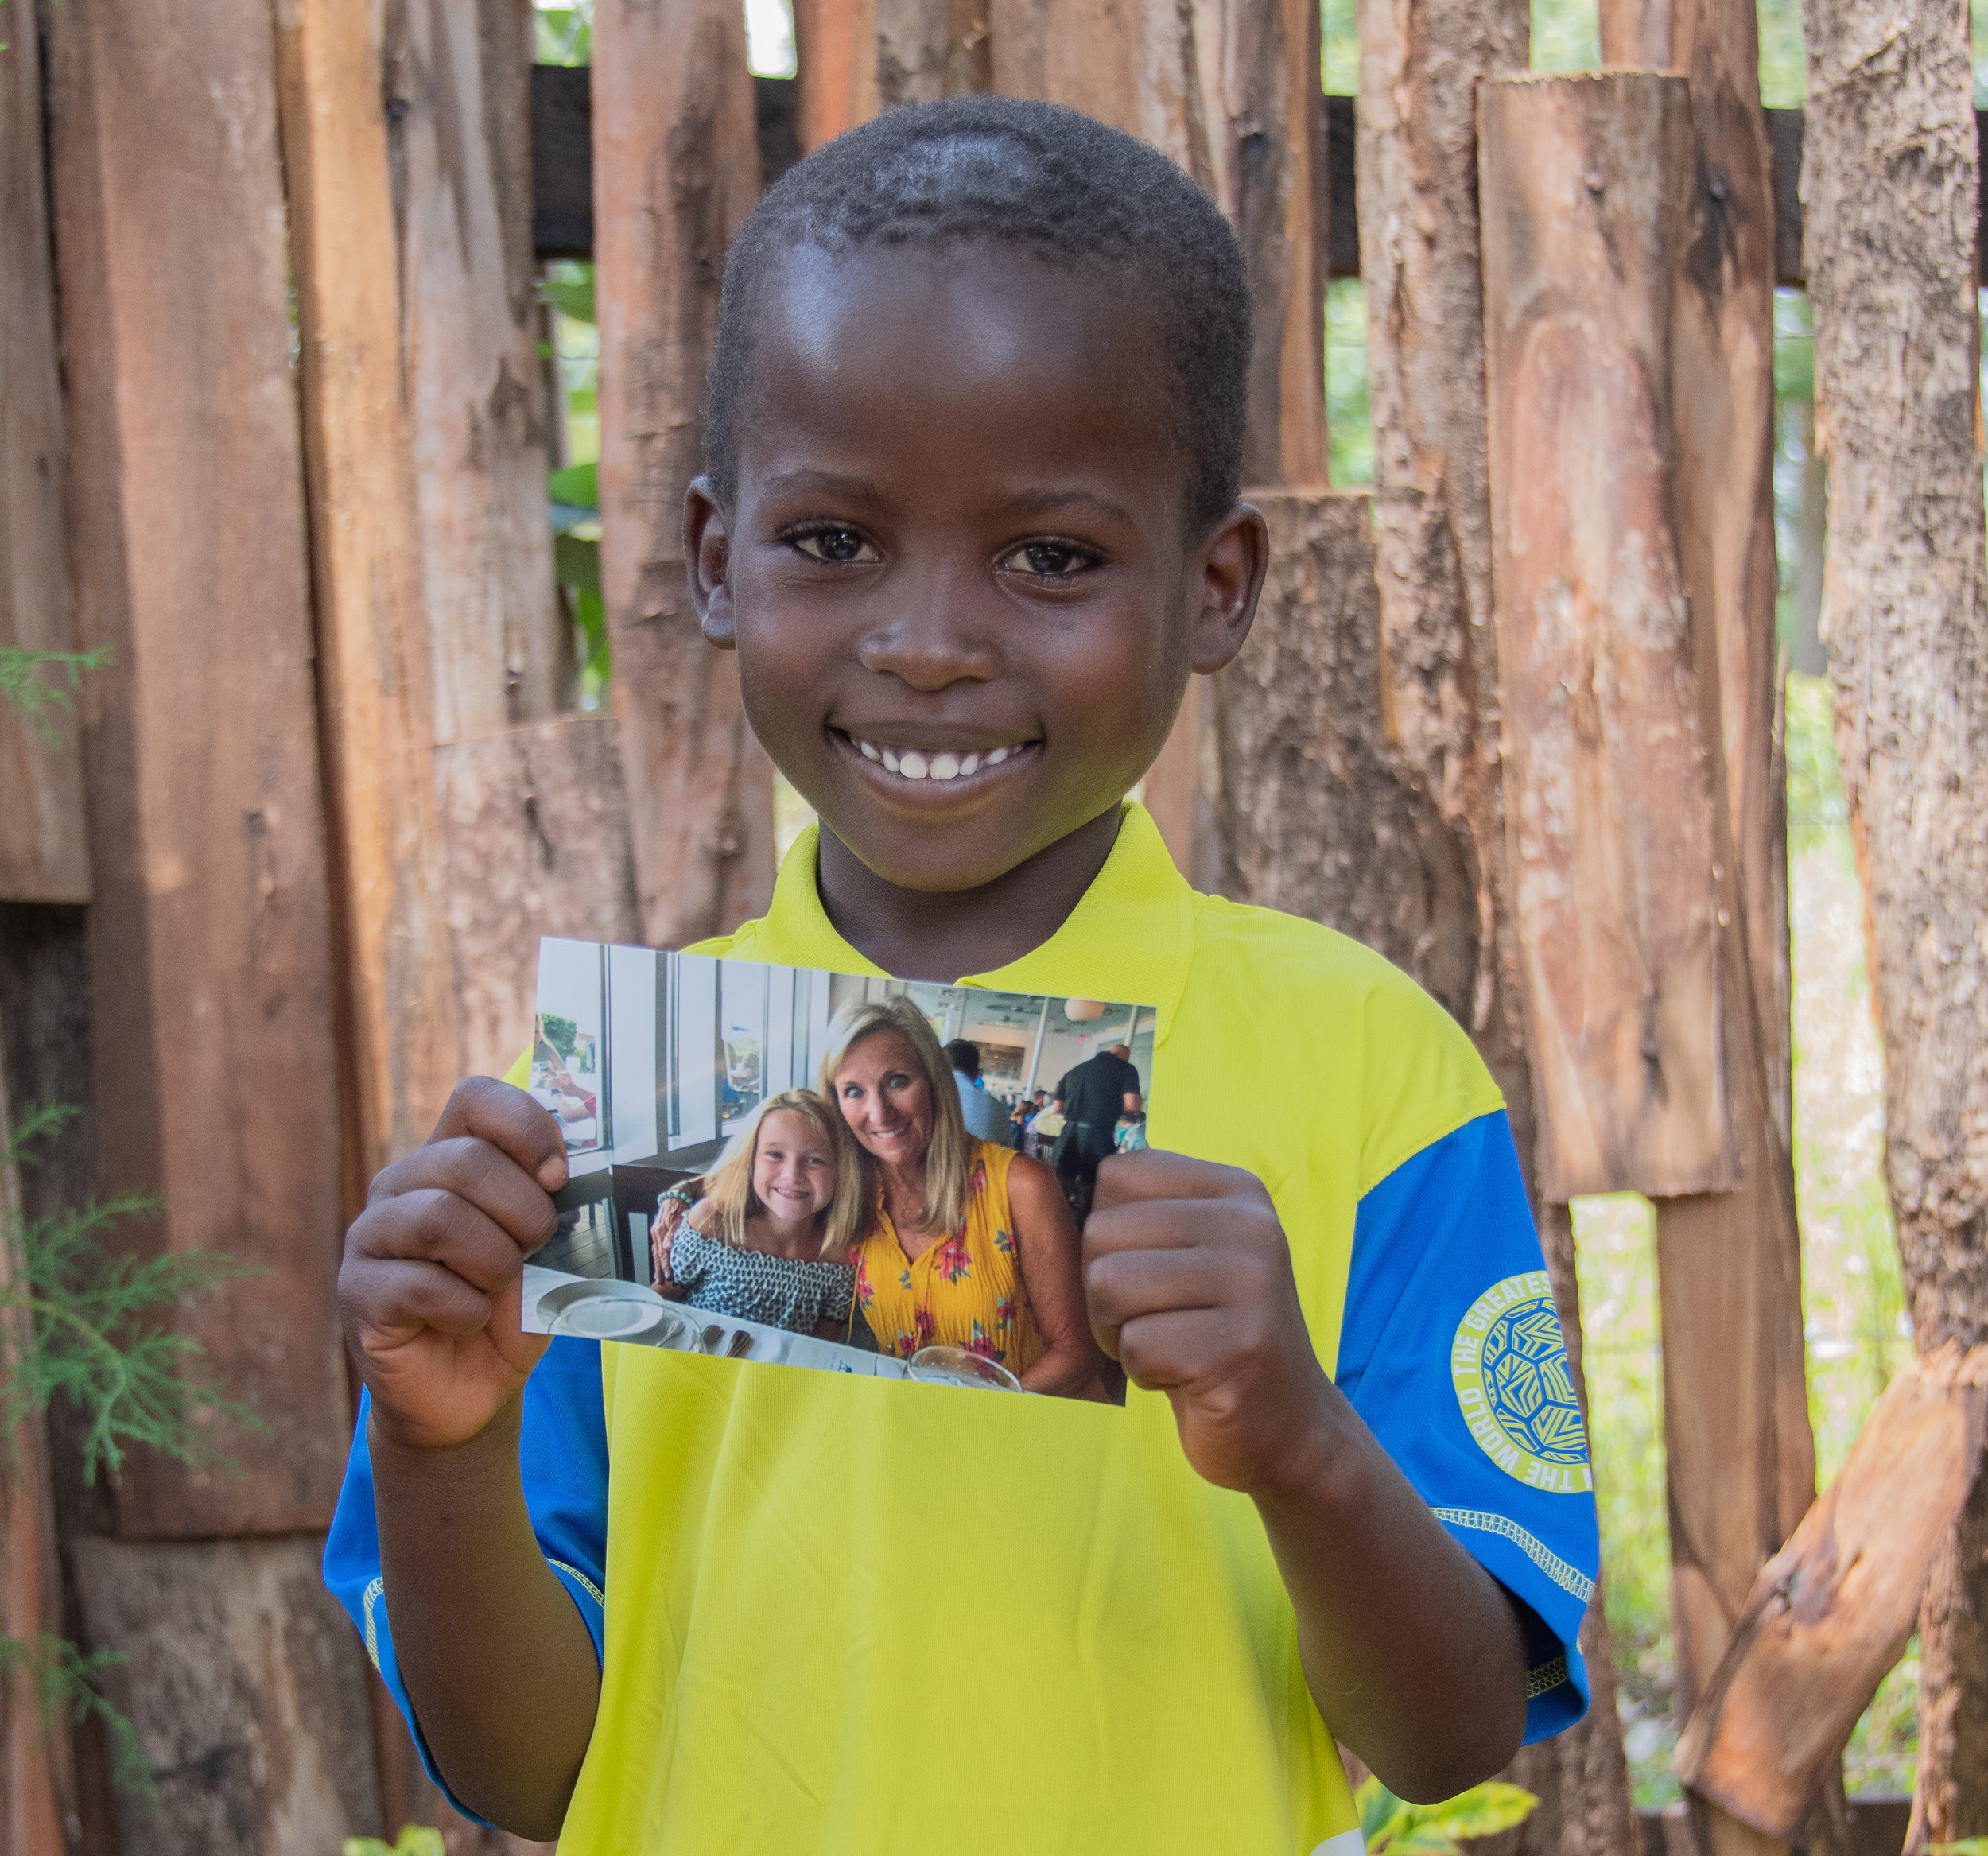 "Sponsorship Testimonial - ""From the moment I first saw a picture of Joshua, I knew he had to be ours. The beaming smile on this special little boy's face gave me and instant feeling of joy and hope. The children at Zoe have been through so much in their short lives. Being a part of Joshua's new life at Zoe through the sponsorship program has given our family a unique way to share God's love."